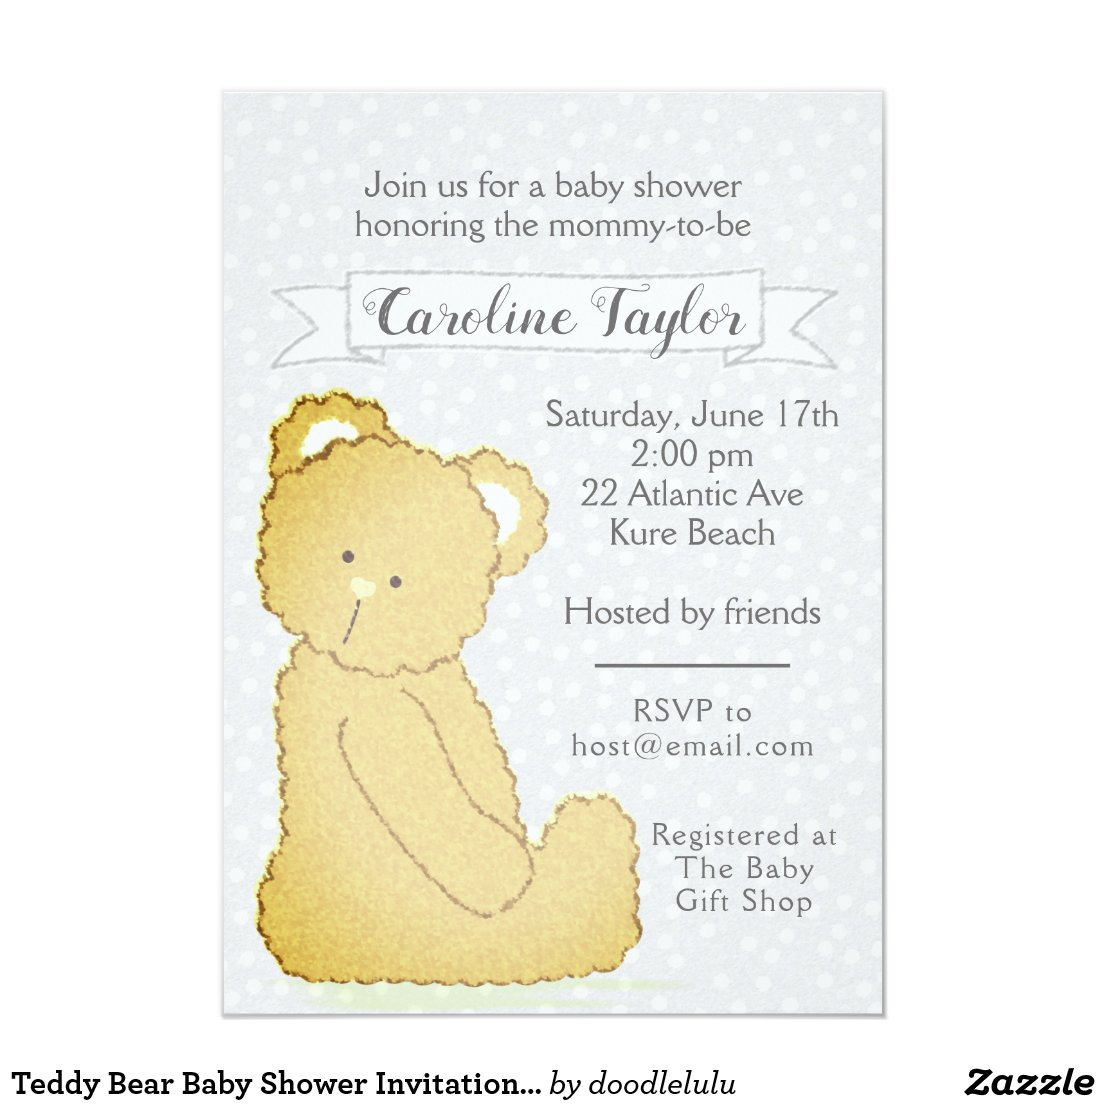 Teddy Bear Baby Shower Invitation gray and brown